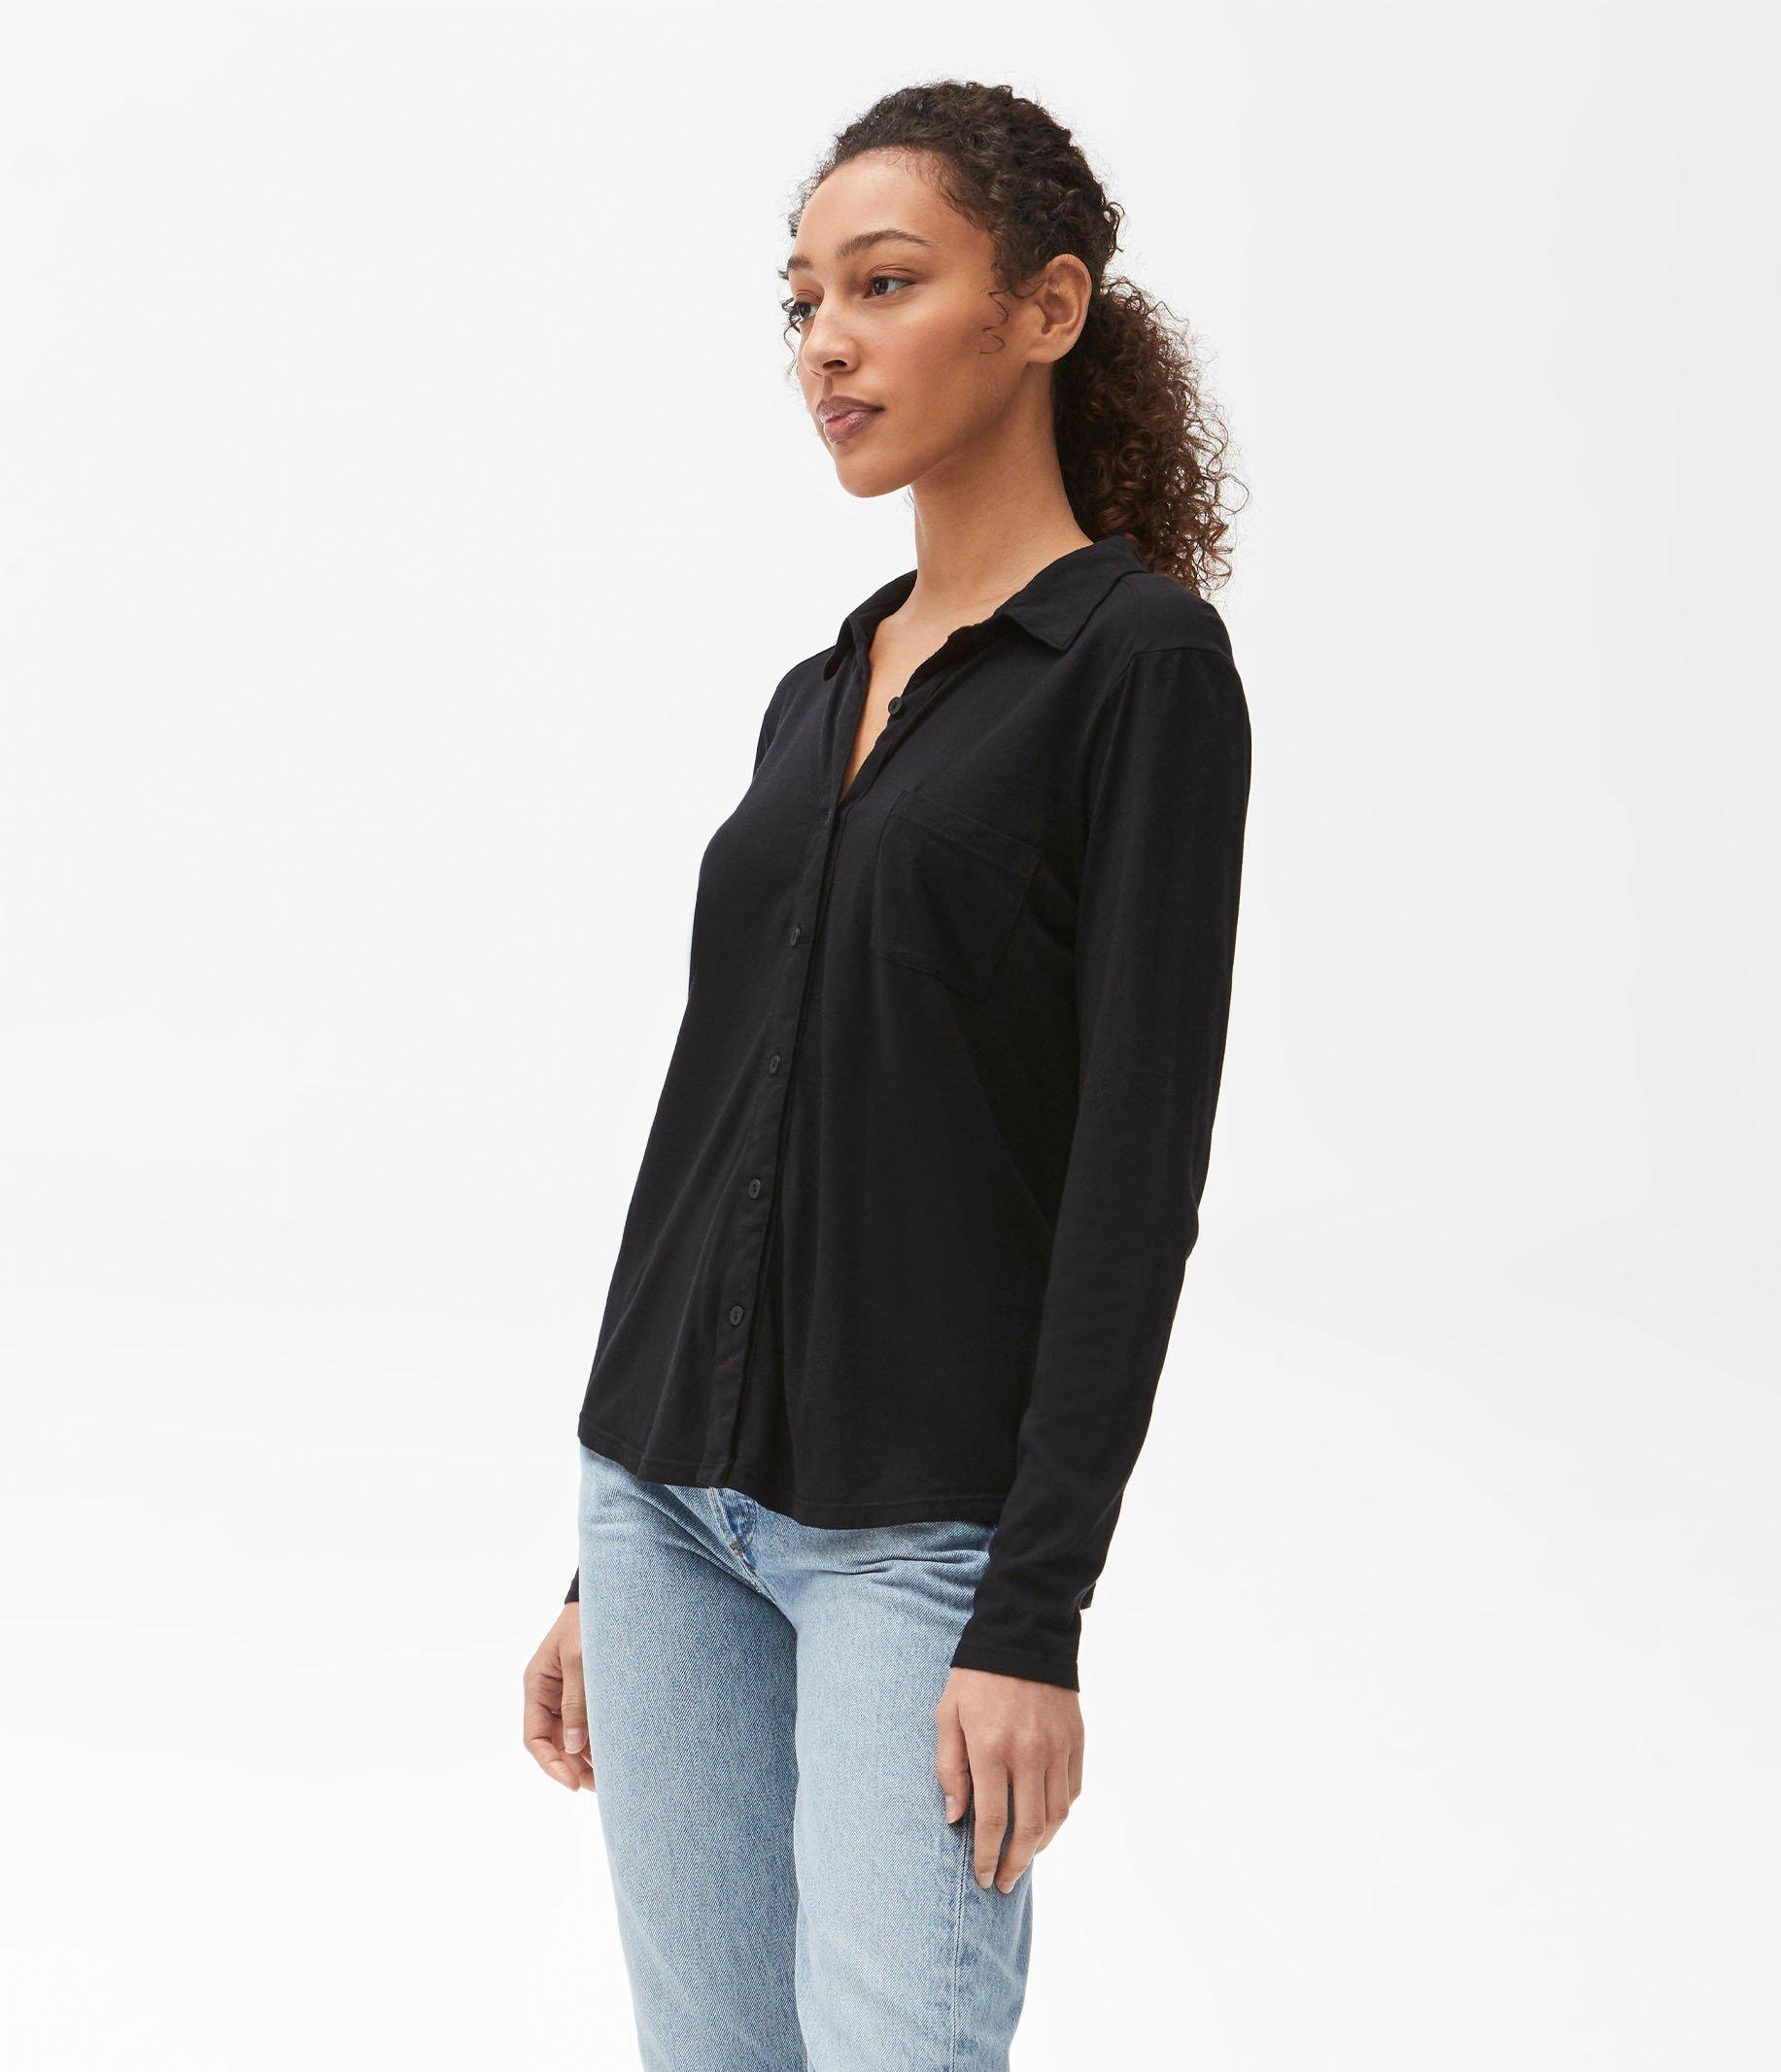 Harley Long Sleeve Button Up Top 2